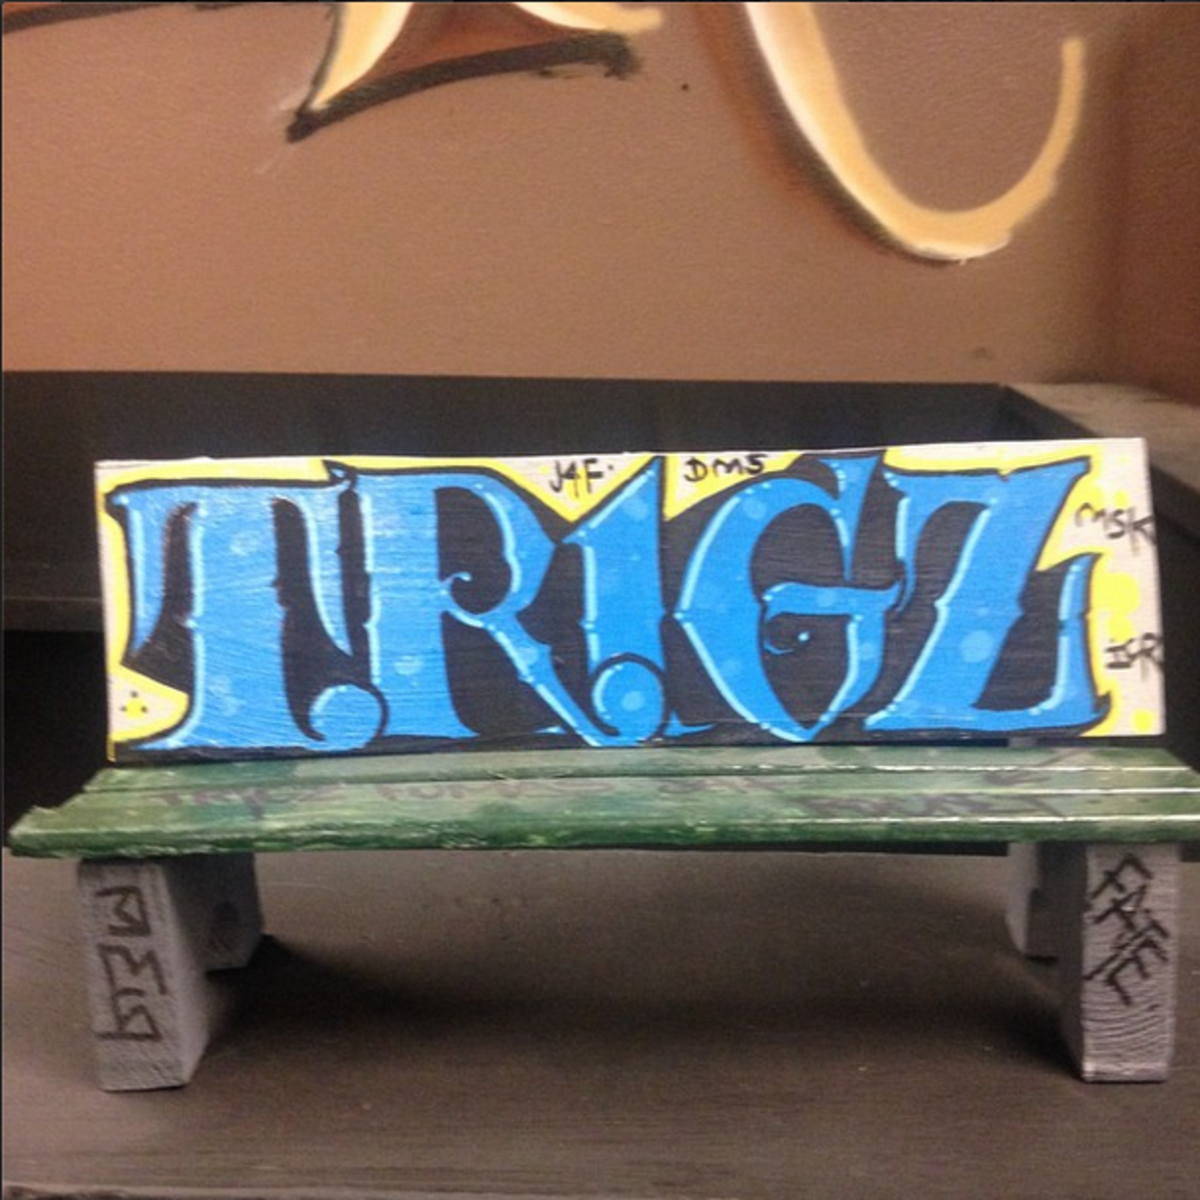 One of the many graffiti pieces Trigz painted.